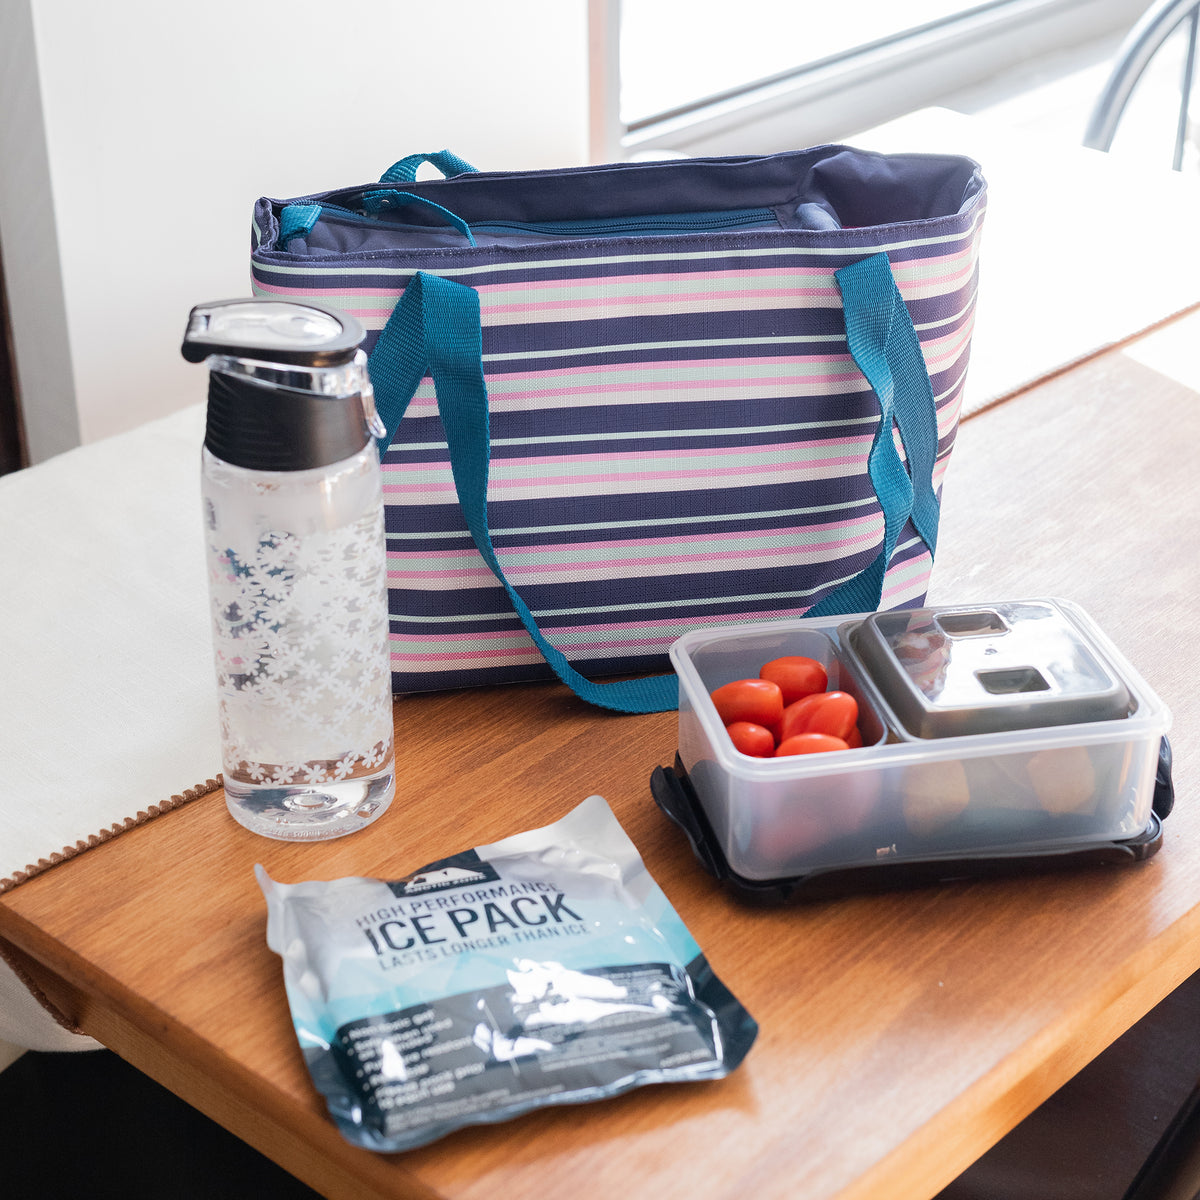 Arctic Zone® Commuter Tote - Mixed Stripes - Lifestyle, having a quiet lunch